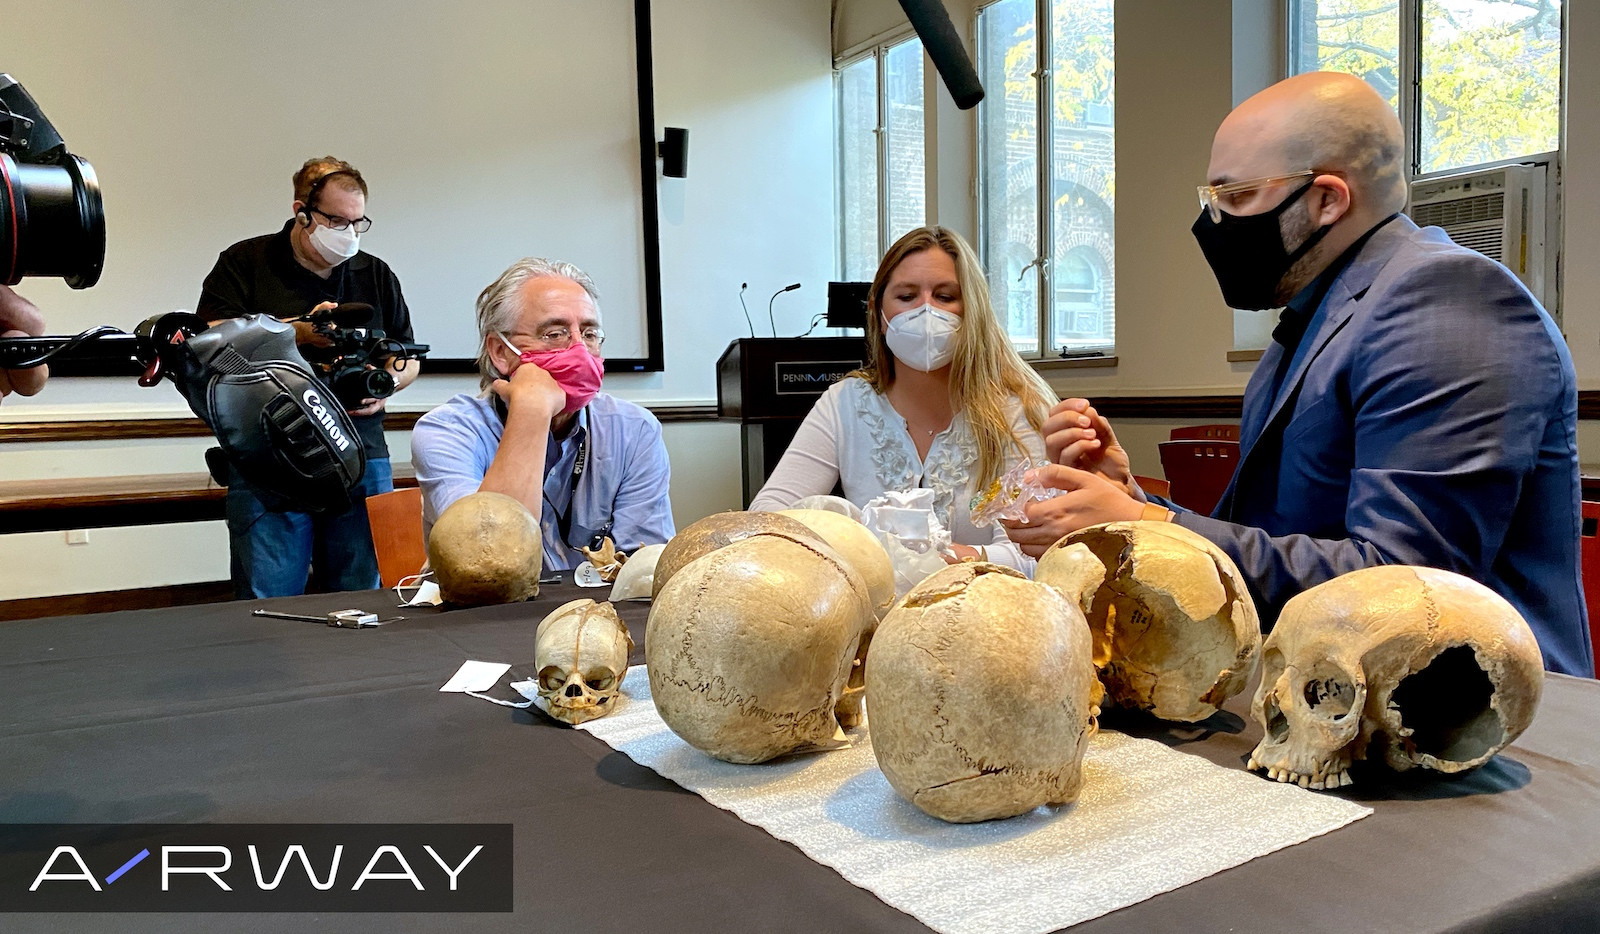 Airway - Drs. Kevin Boyd, Marianna Evans, and Reza Movahed